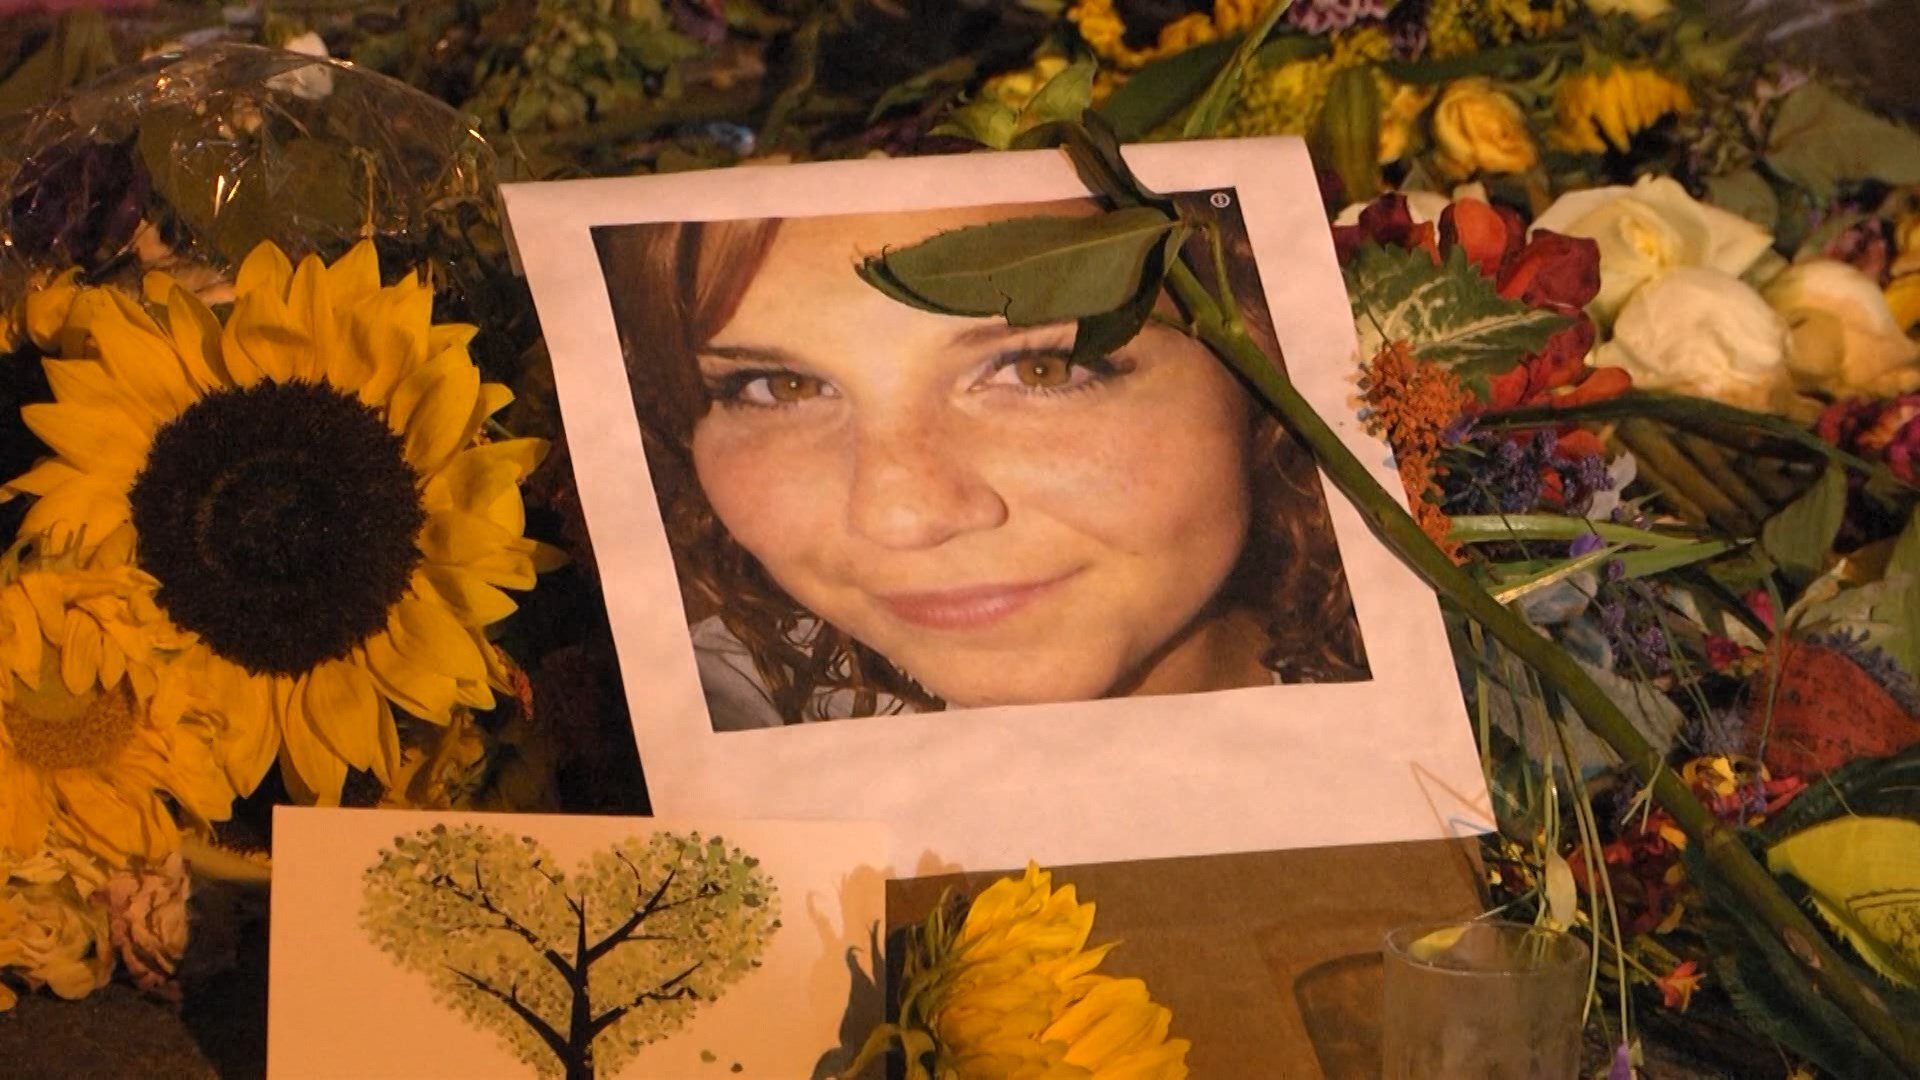 Timeline: Trump has yet to speak with Heather Heyer's family